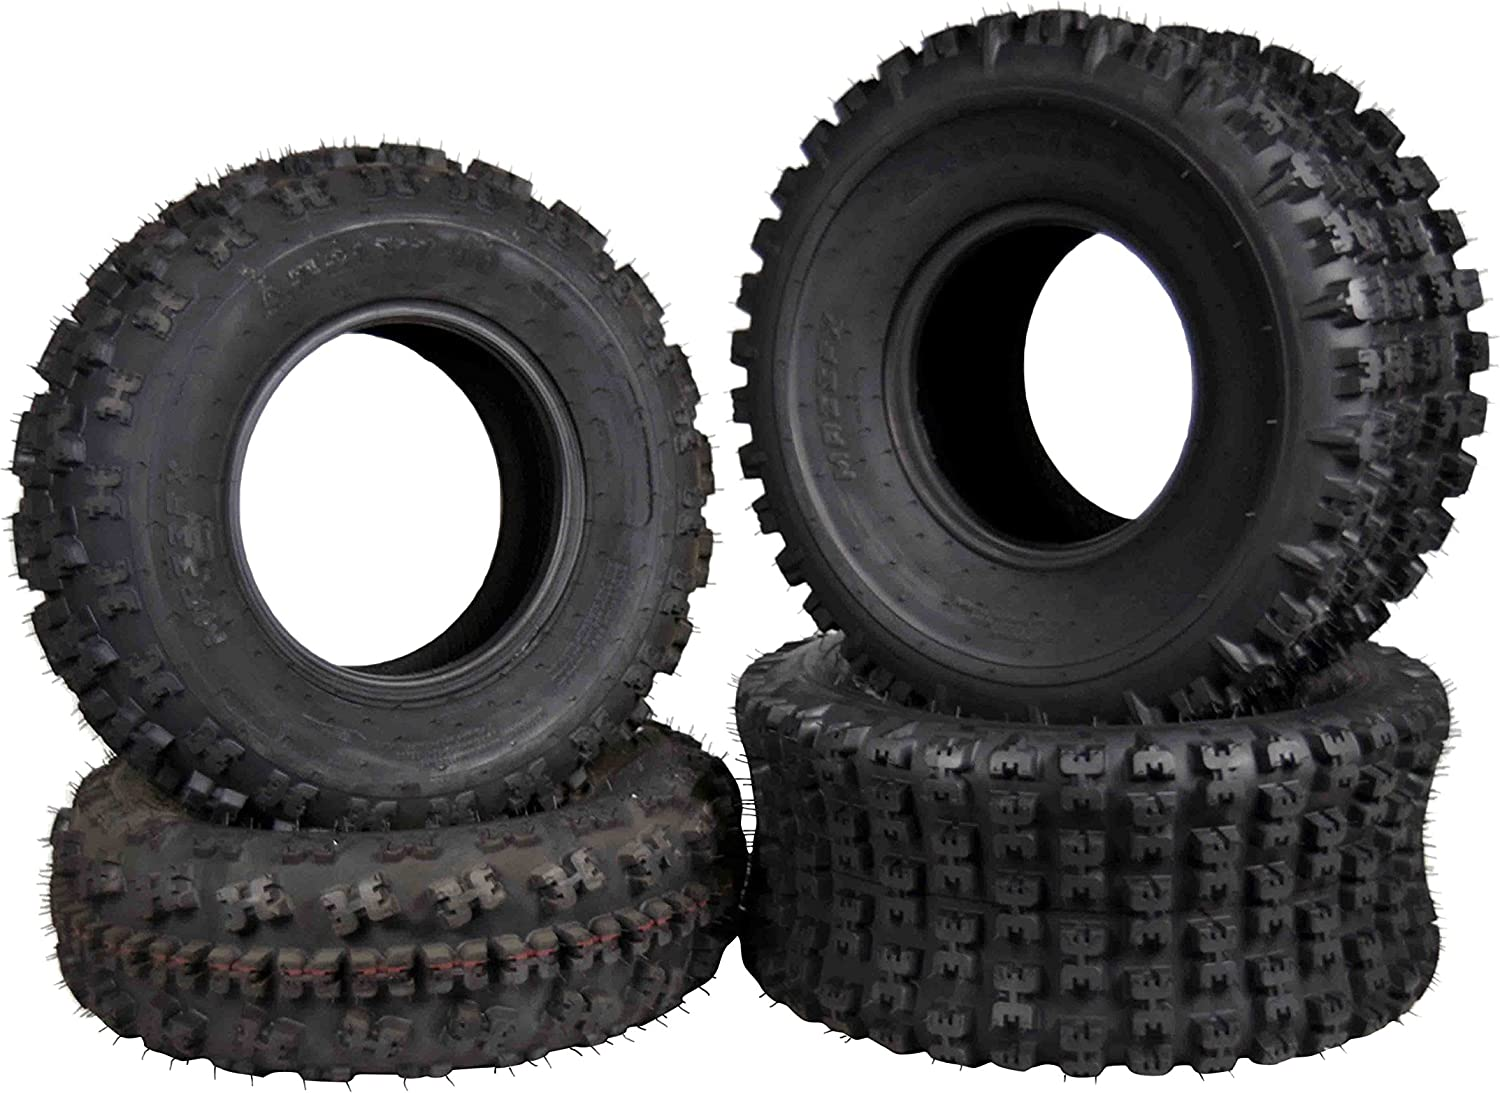 MASSFX 4 Set 21X7-10 20x10-9 ATV Tires Durable 6 ply Dual Compound Curved Tread